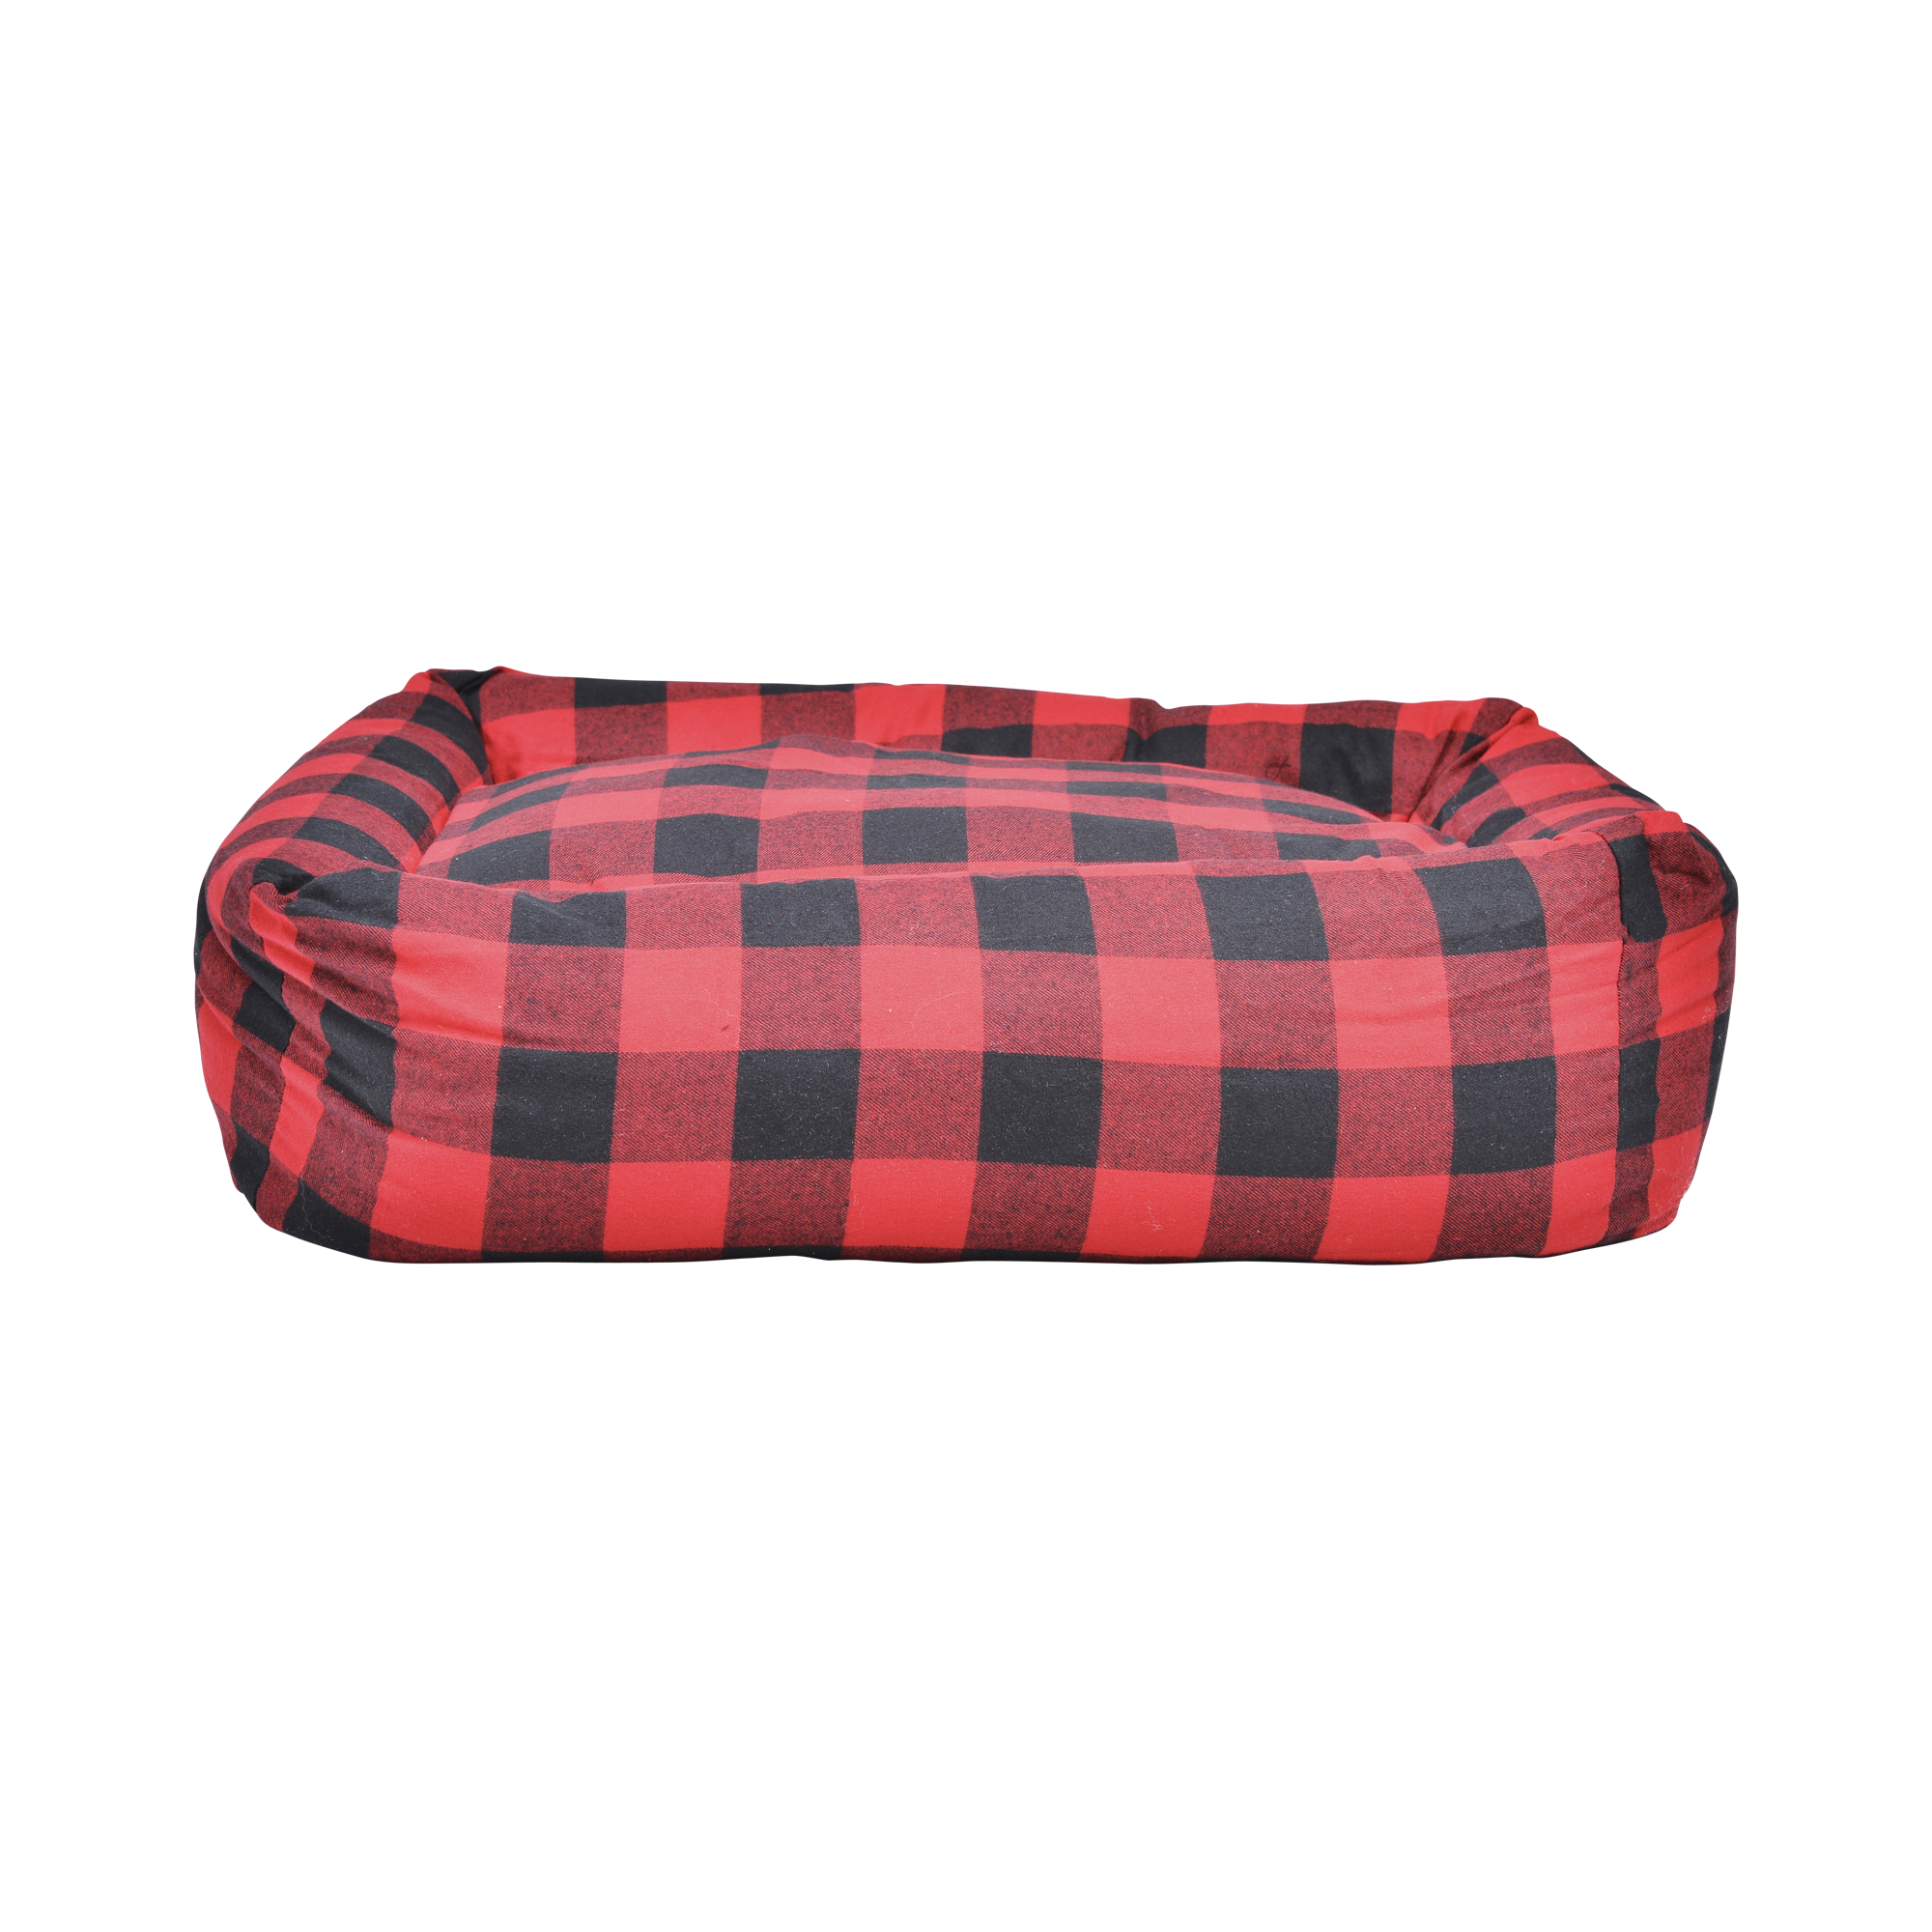 buffalo-plaid-square-snuggler-bed-red-1